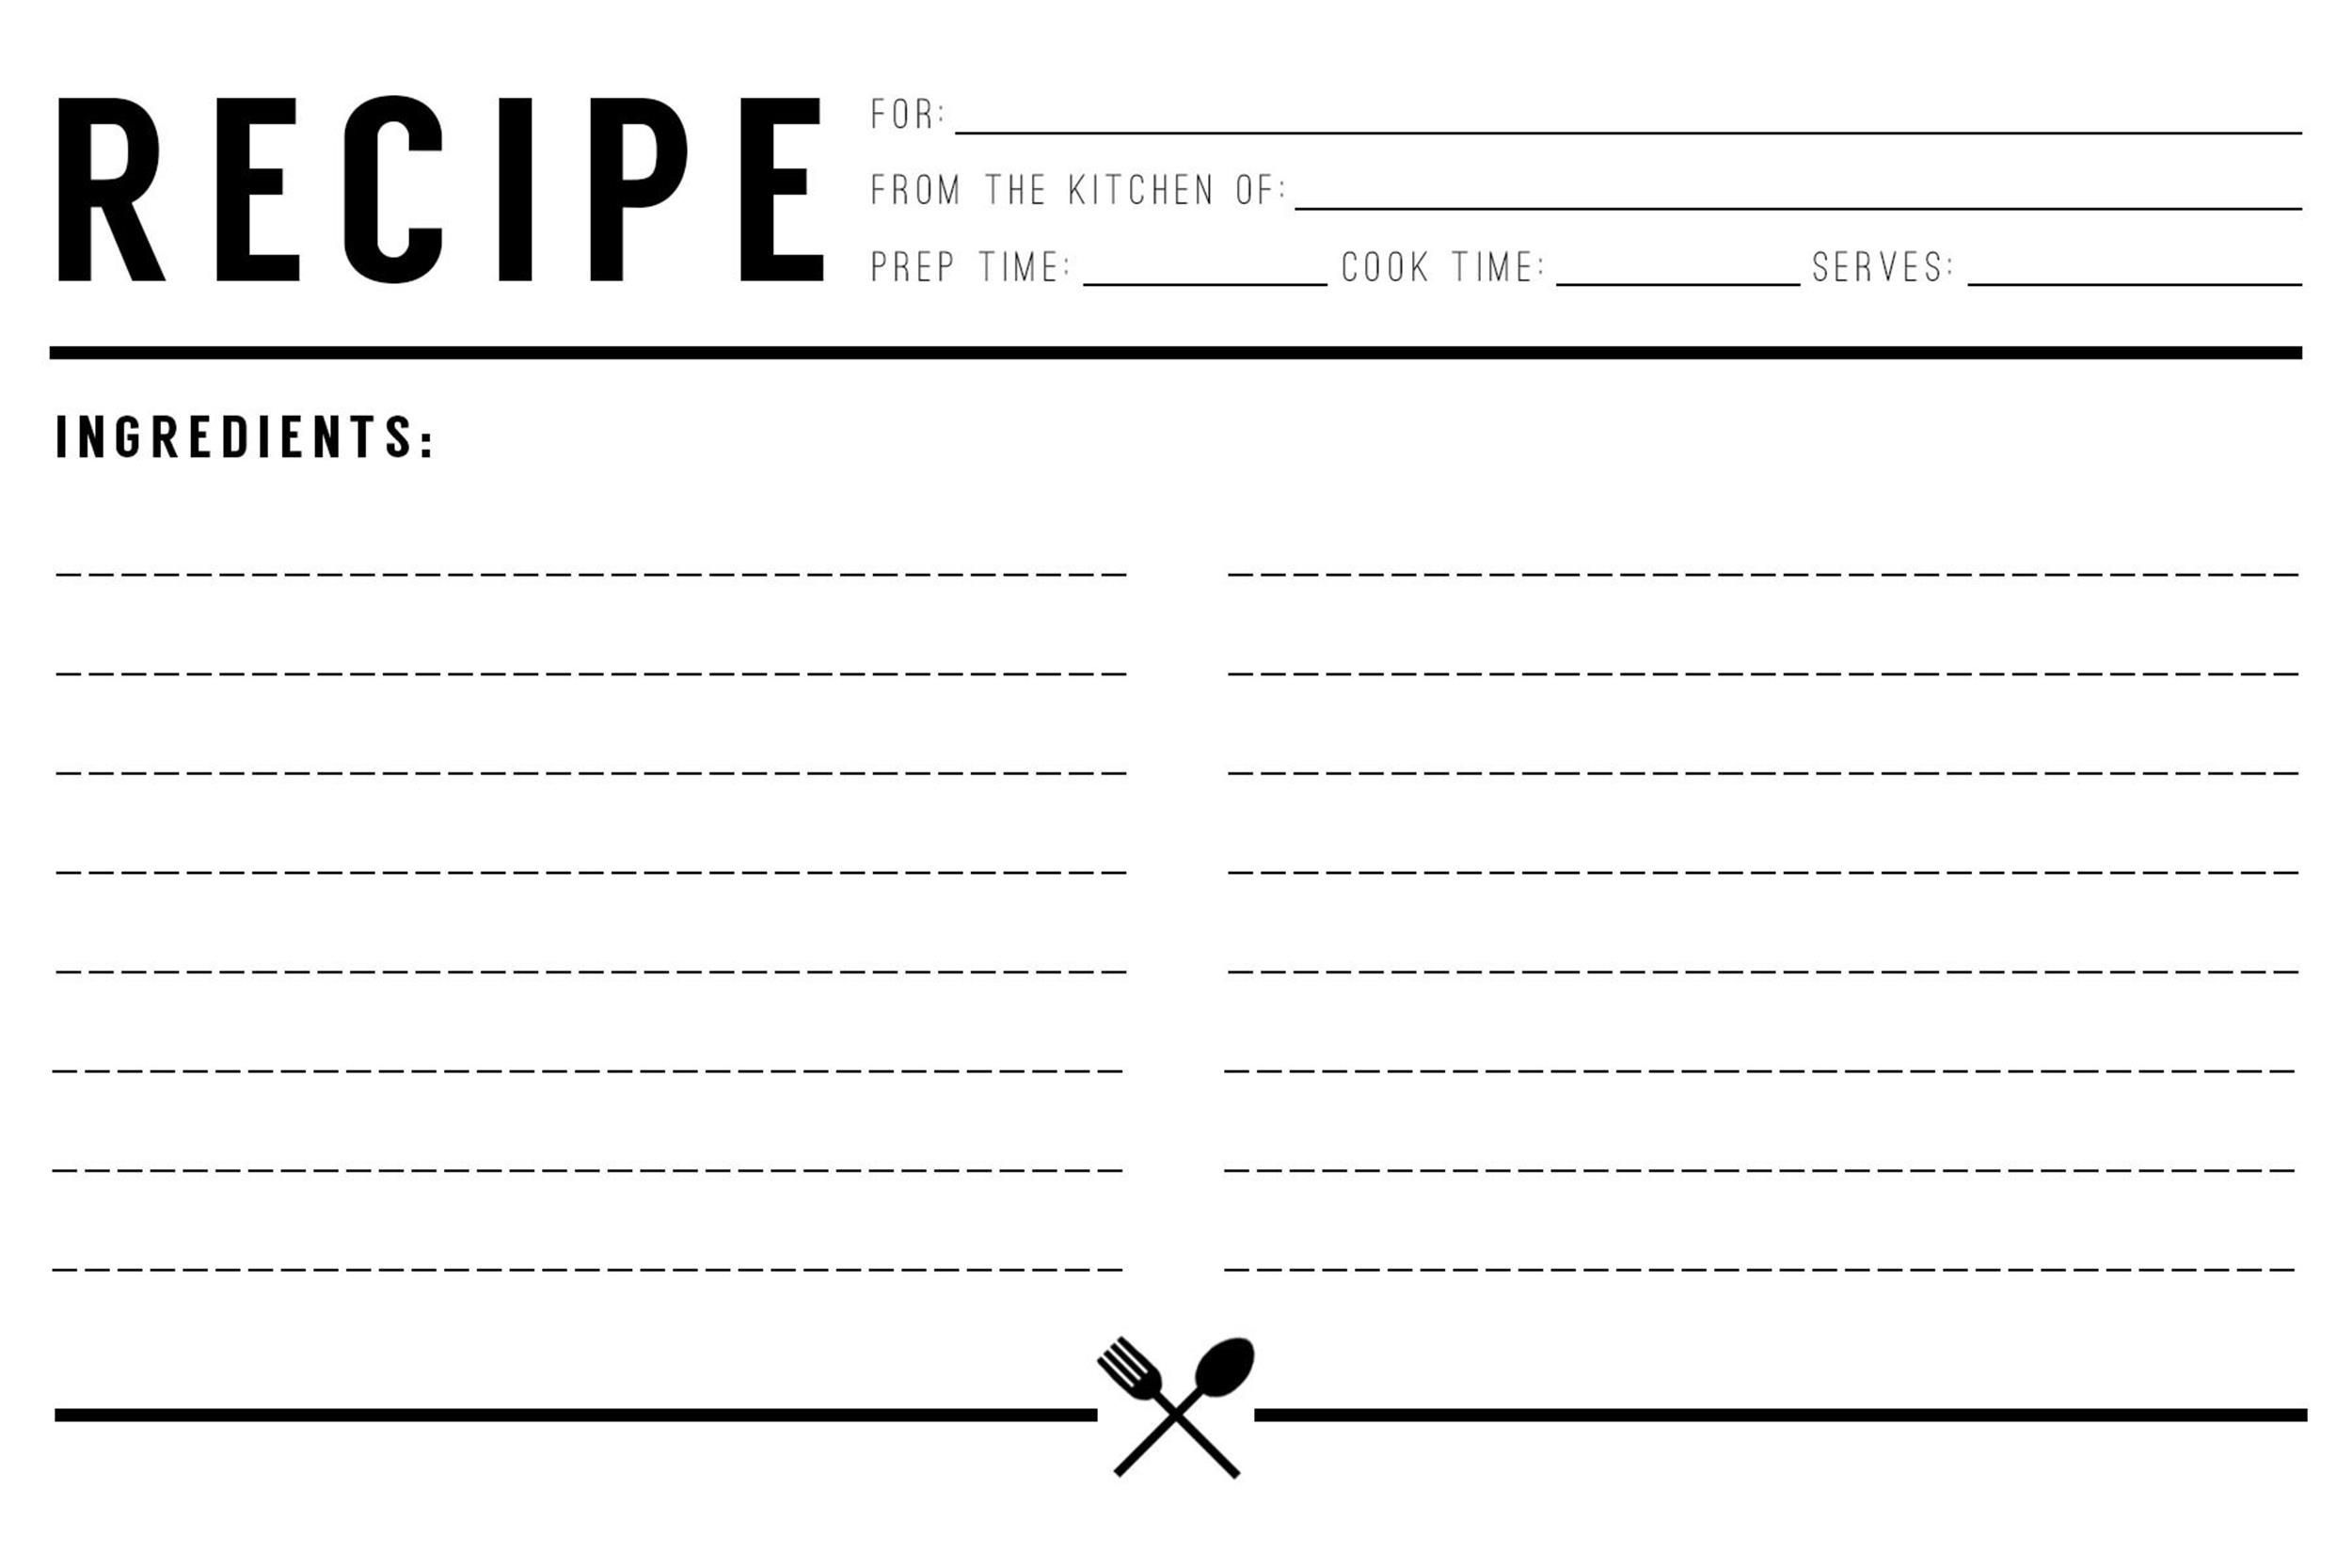 004 Archaicawful Recipe Card Template For Word Design  Printable Blank FillableFull